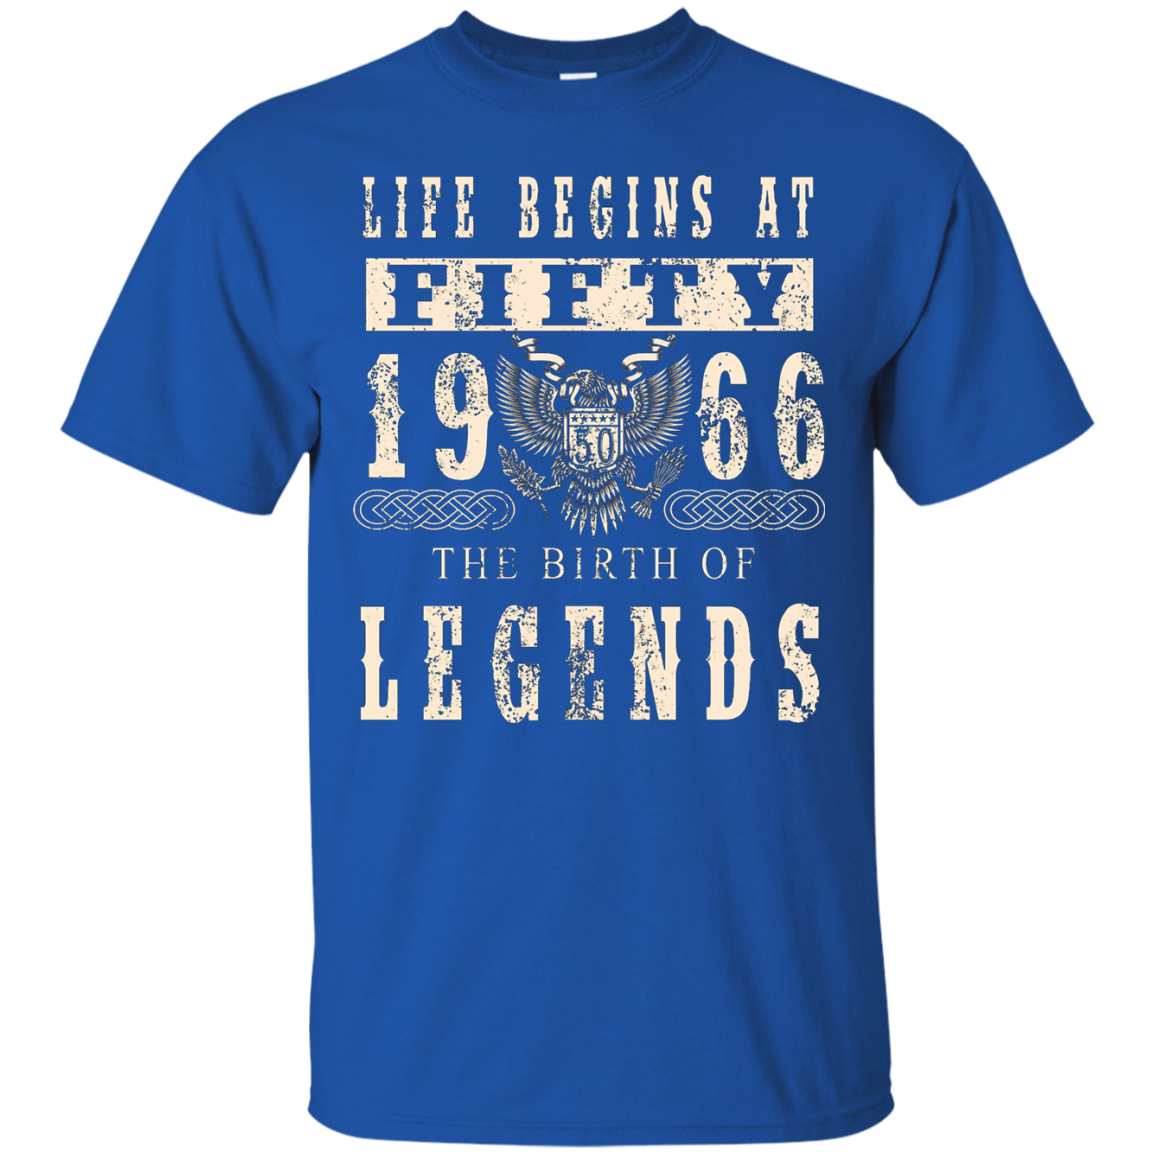 made in 1966 t shirt